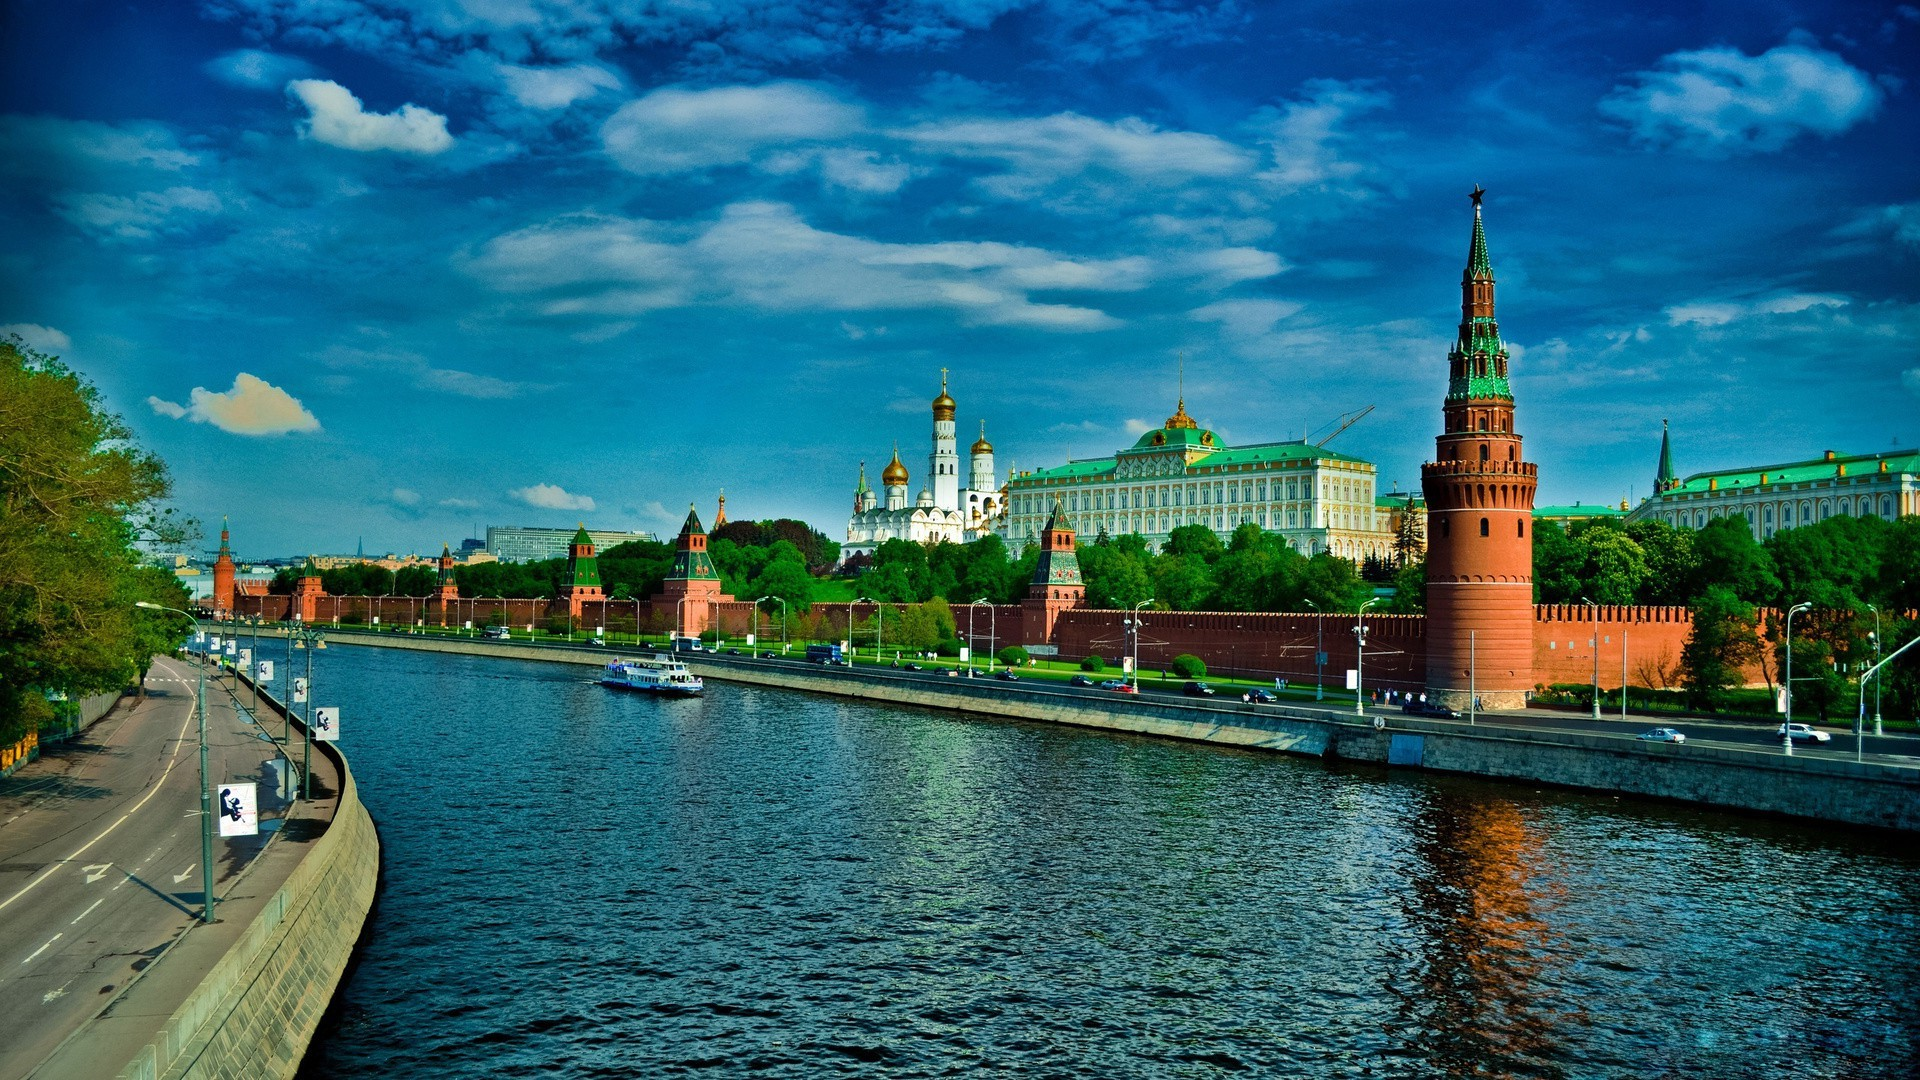 famous places architecture water river travel city building sky outdoors bridge church dusk tower reflection kremlin sunset canal evening cityscape cathedral